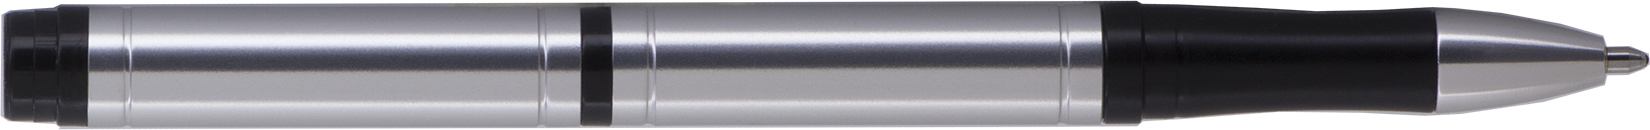 PT - FISHER Silver Pocket Tec Space Pen - Black Gift Boxed